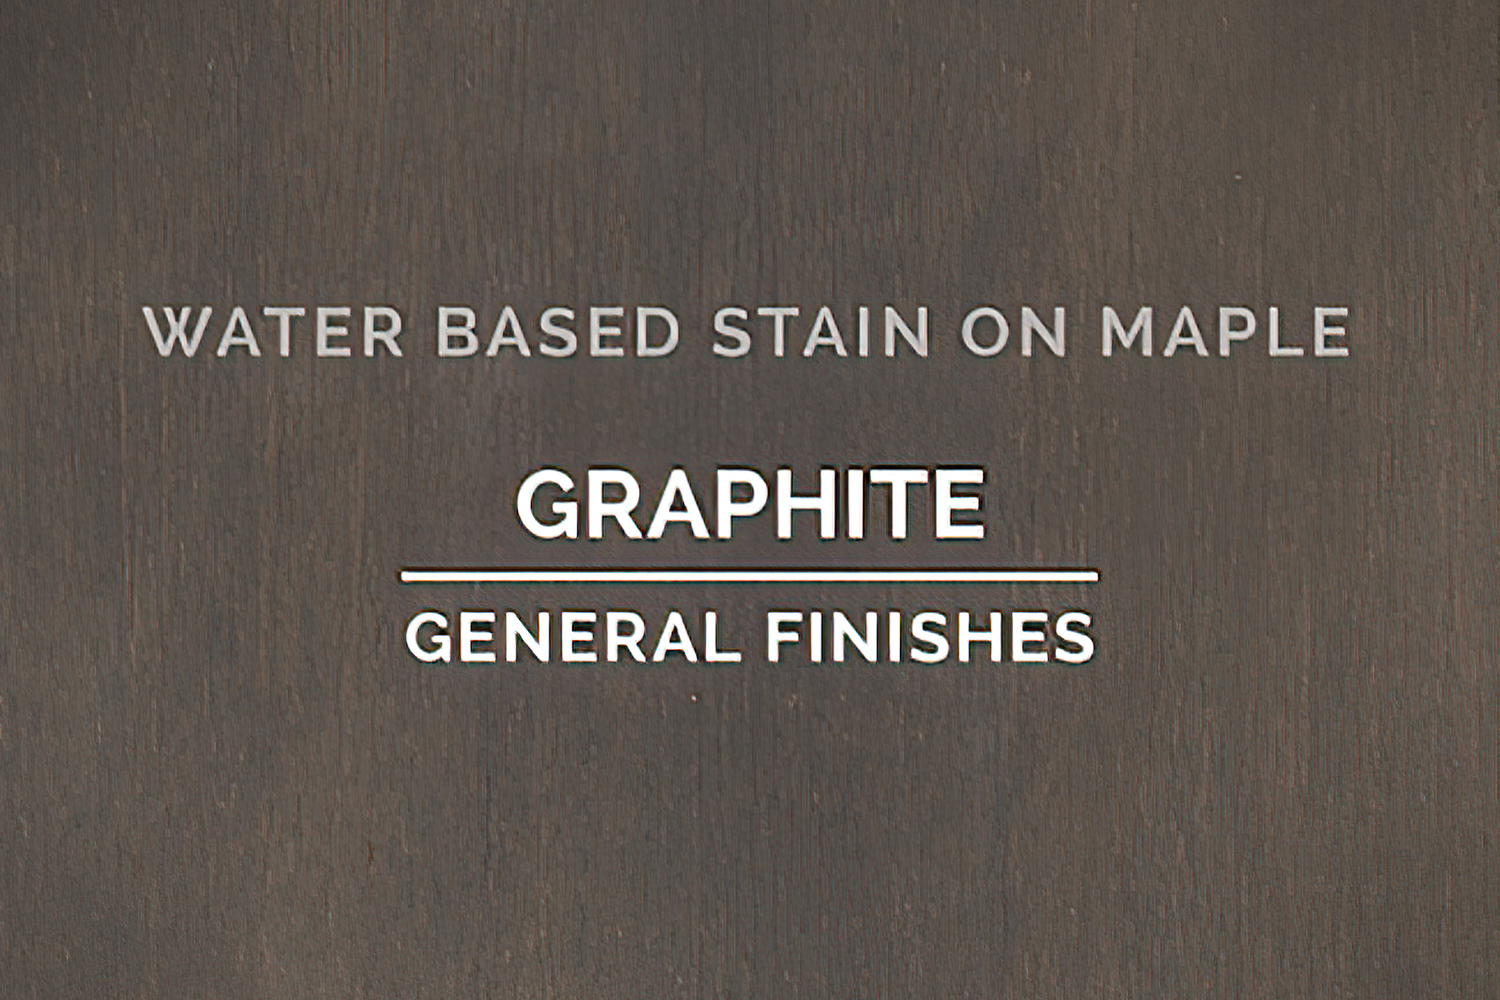 General Finishes Graphite Stain Water Based